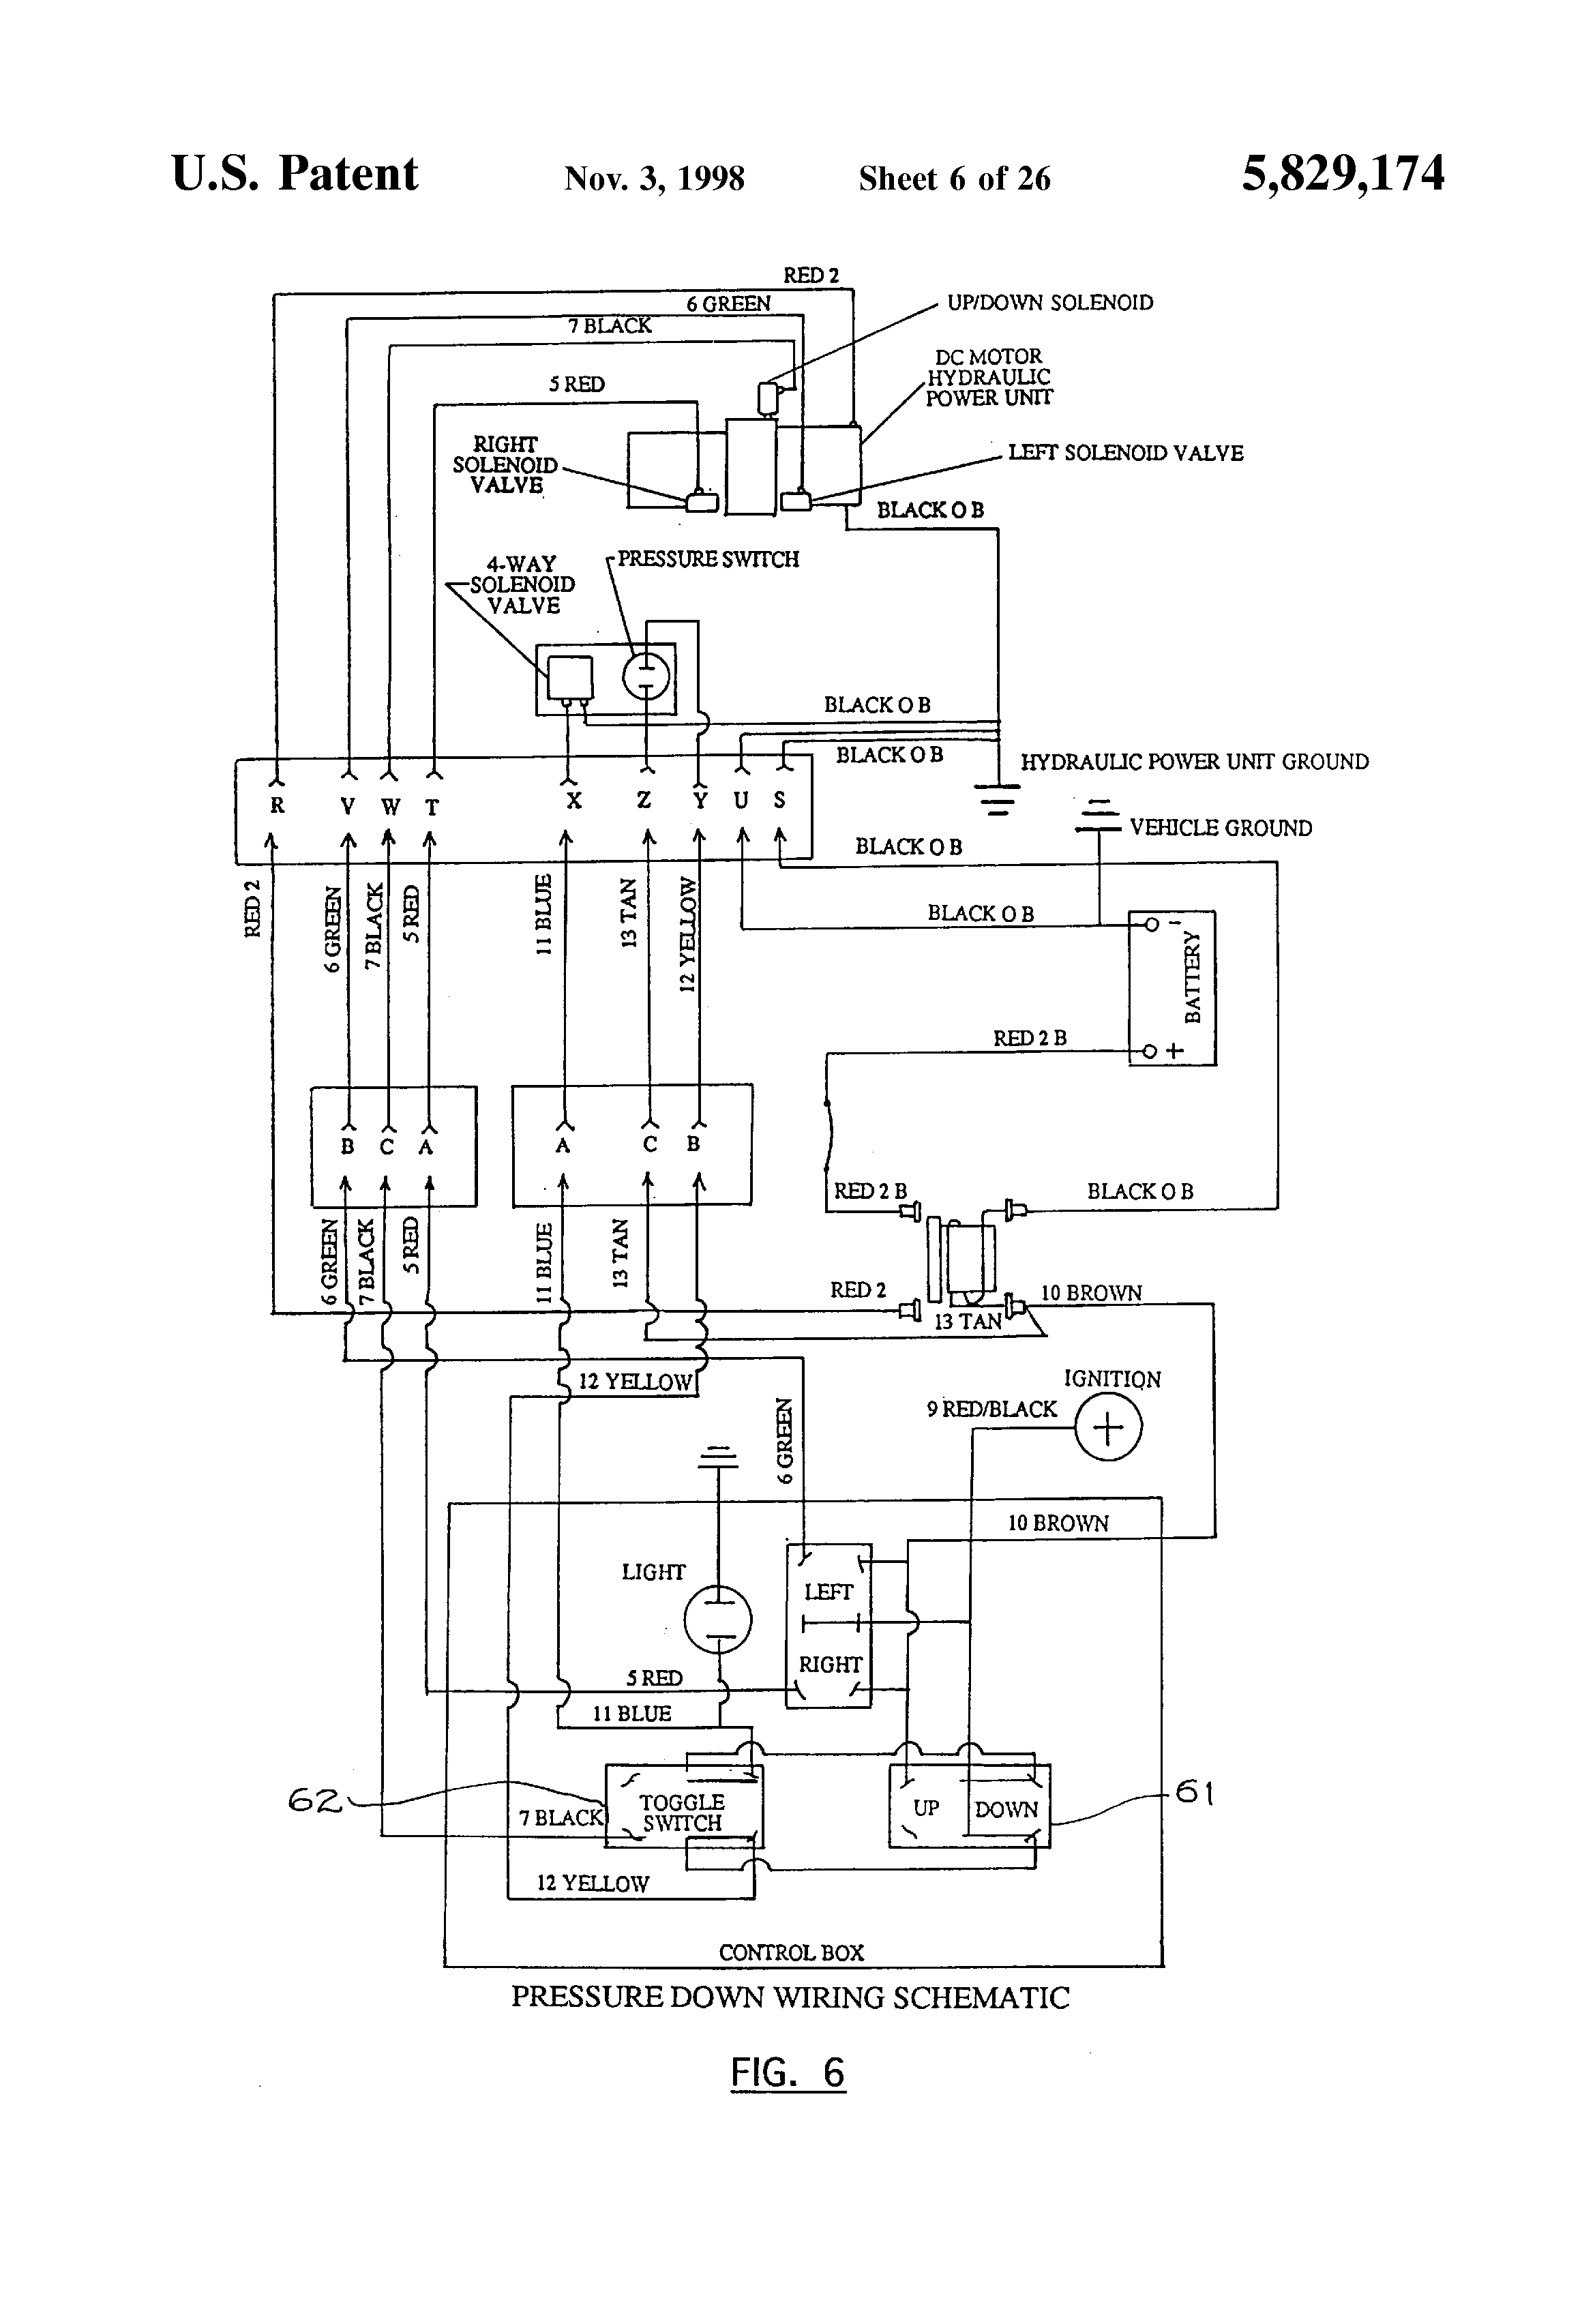 2wire Programmable Thermostat Wiring Diagram White Rodgers Thermostat 1f56 Wiring Diagram Wiring